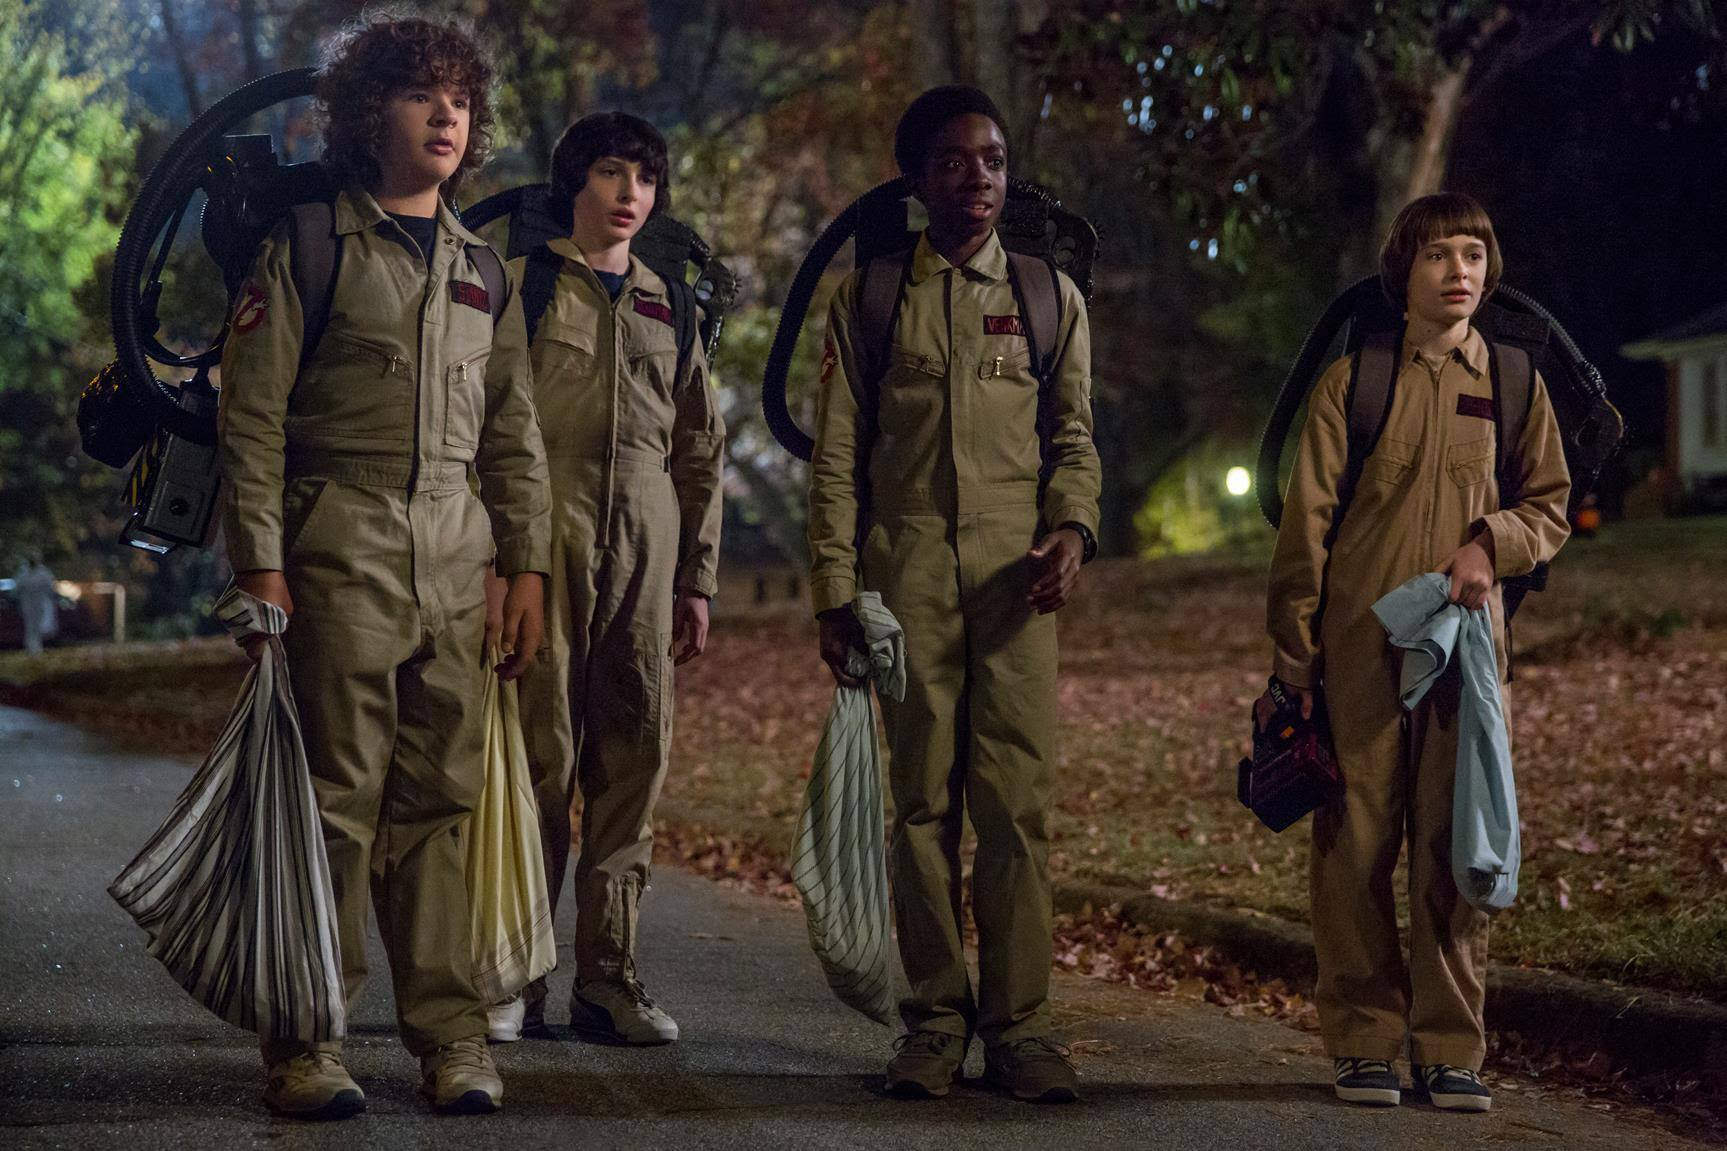 The kids from Stranger Things 2 trick-or-treating as the Ghostbusters